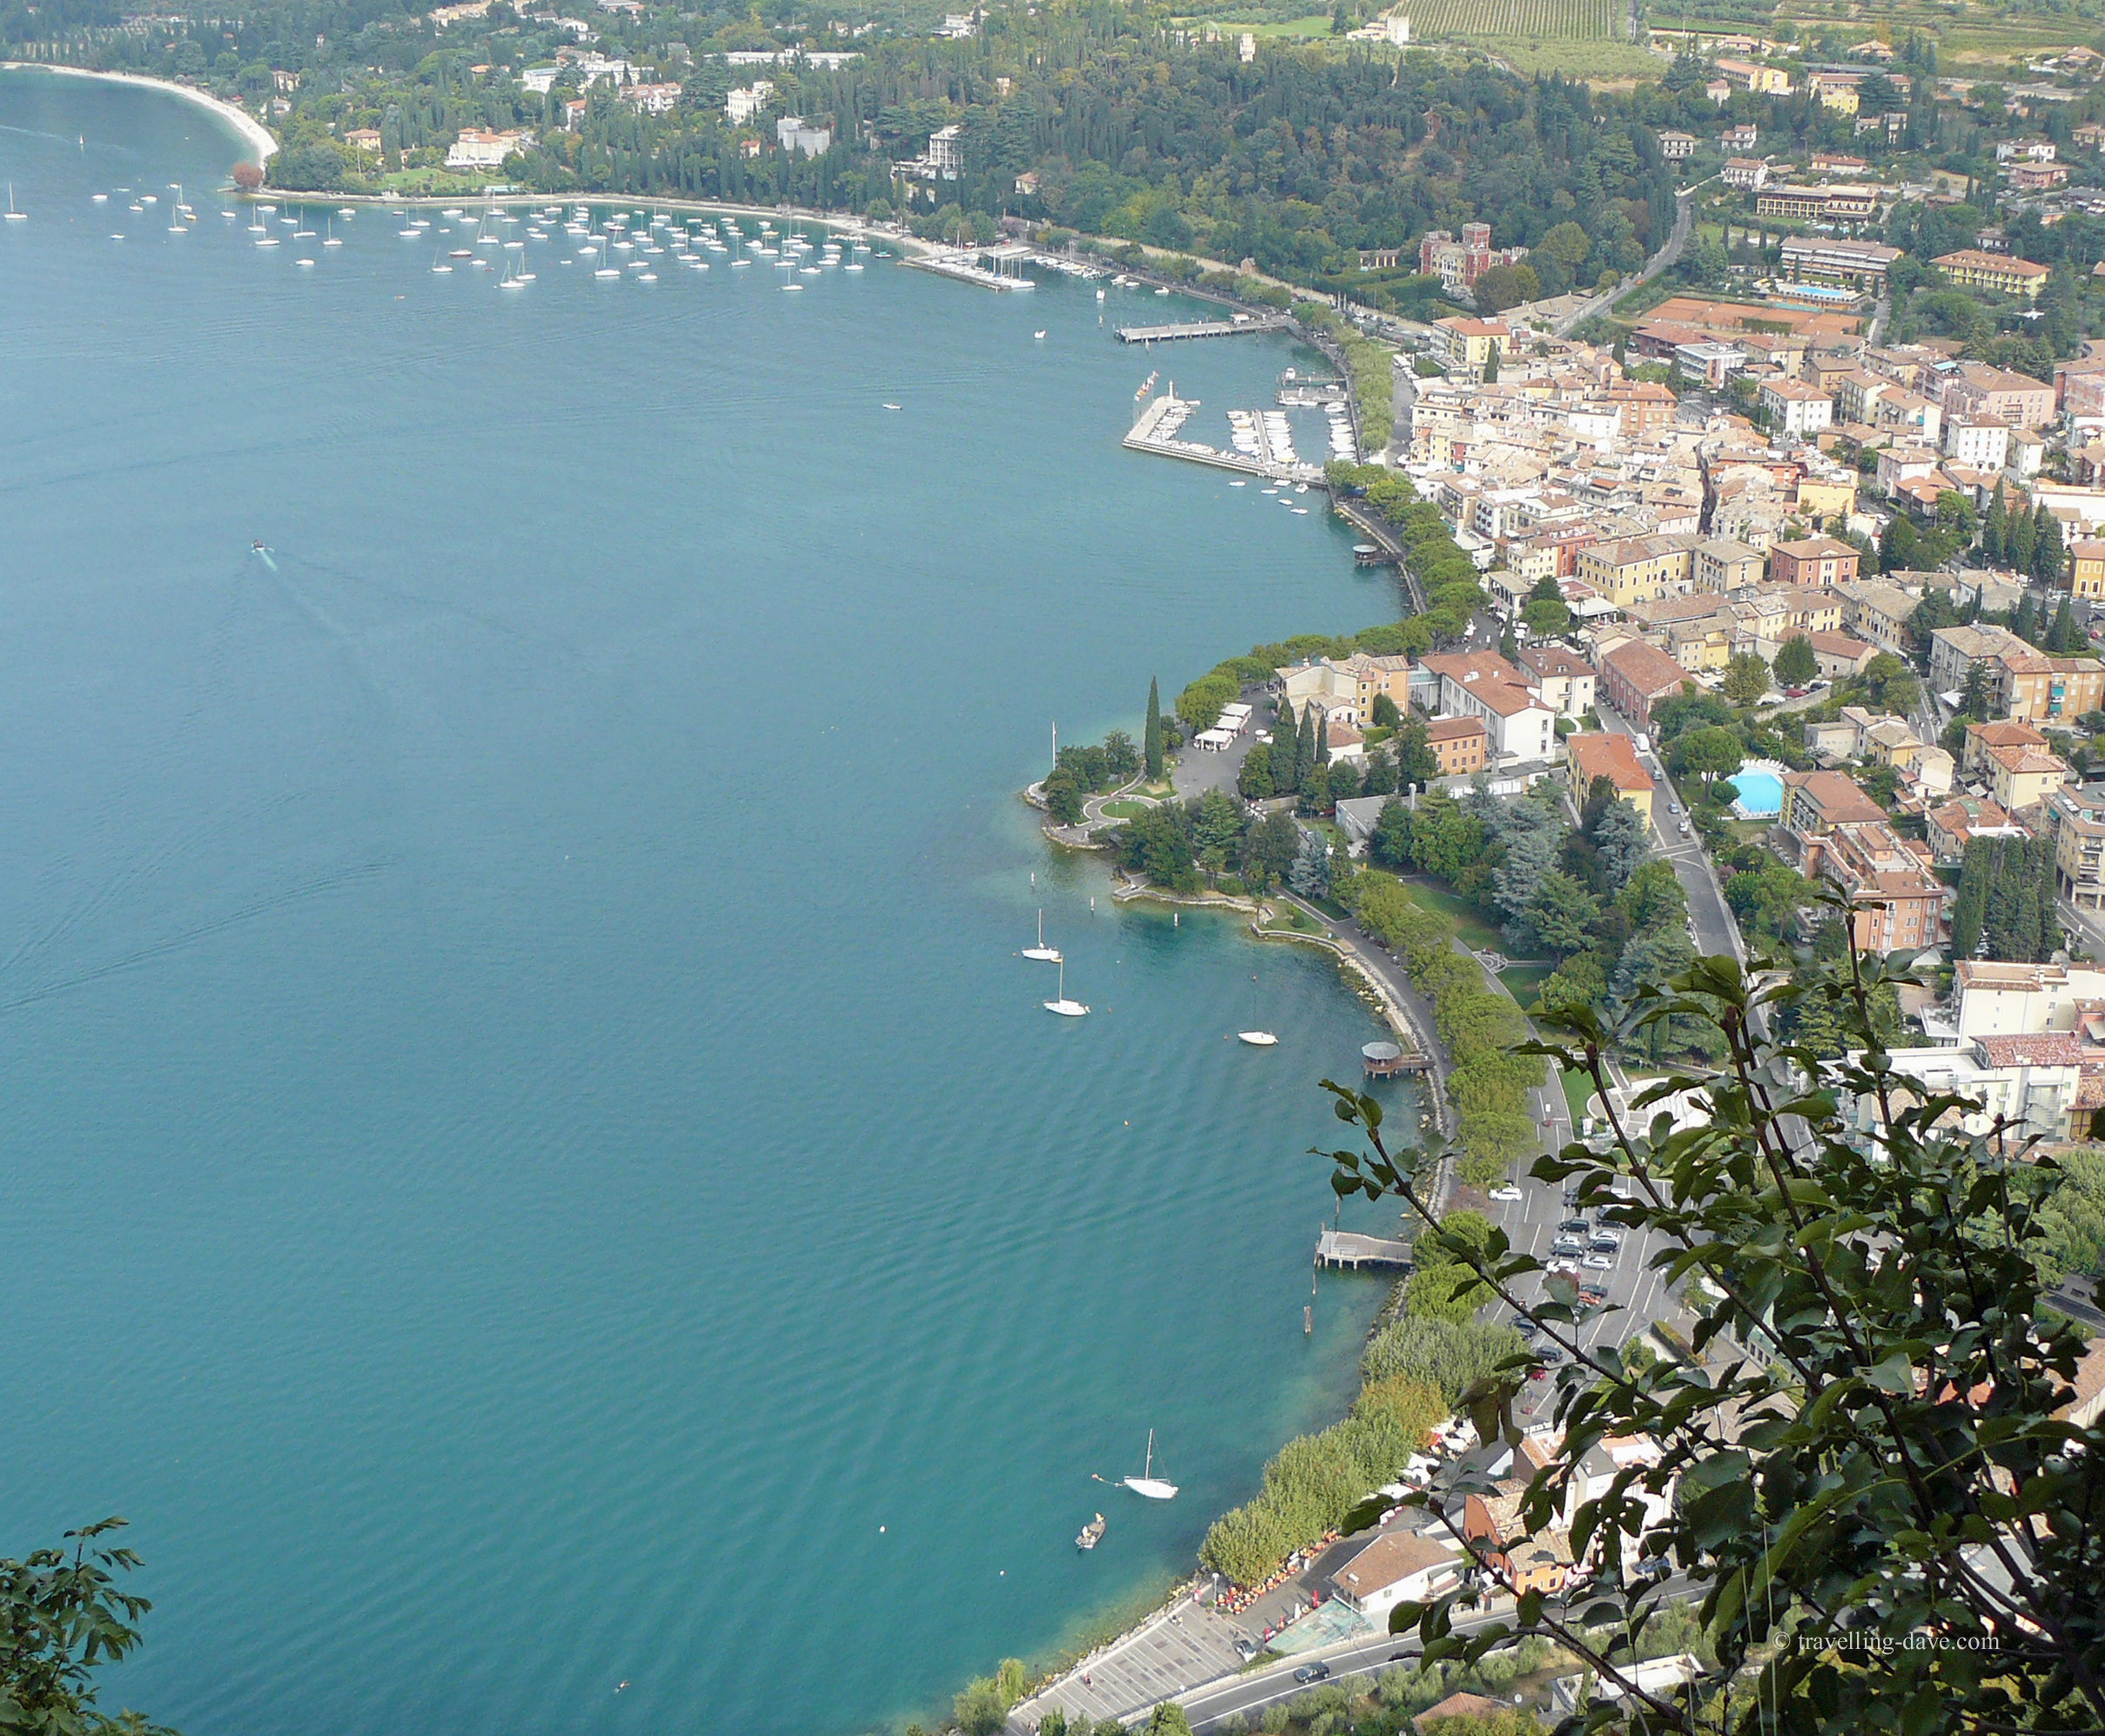 The village of Garda seen from the top of the Rock